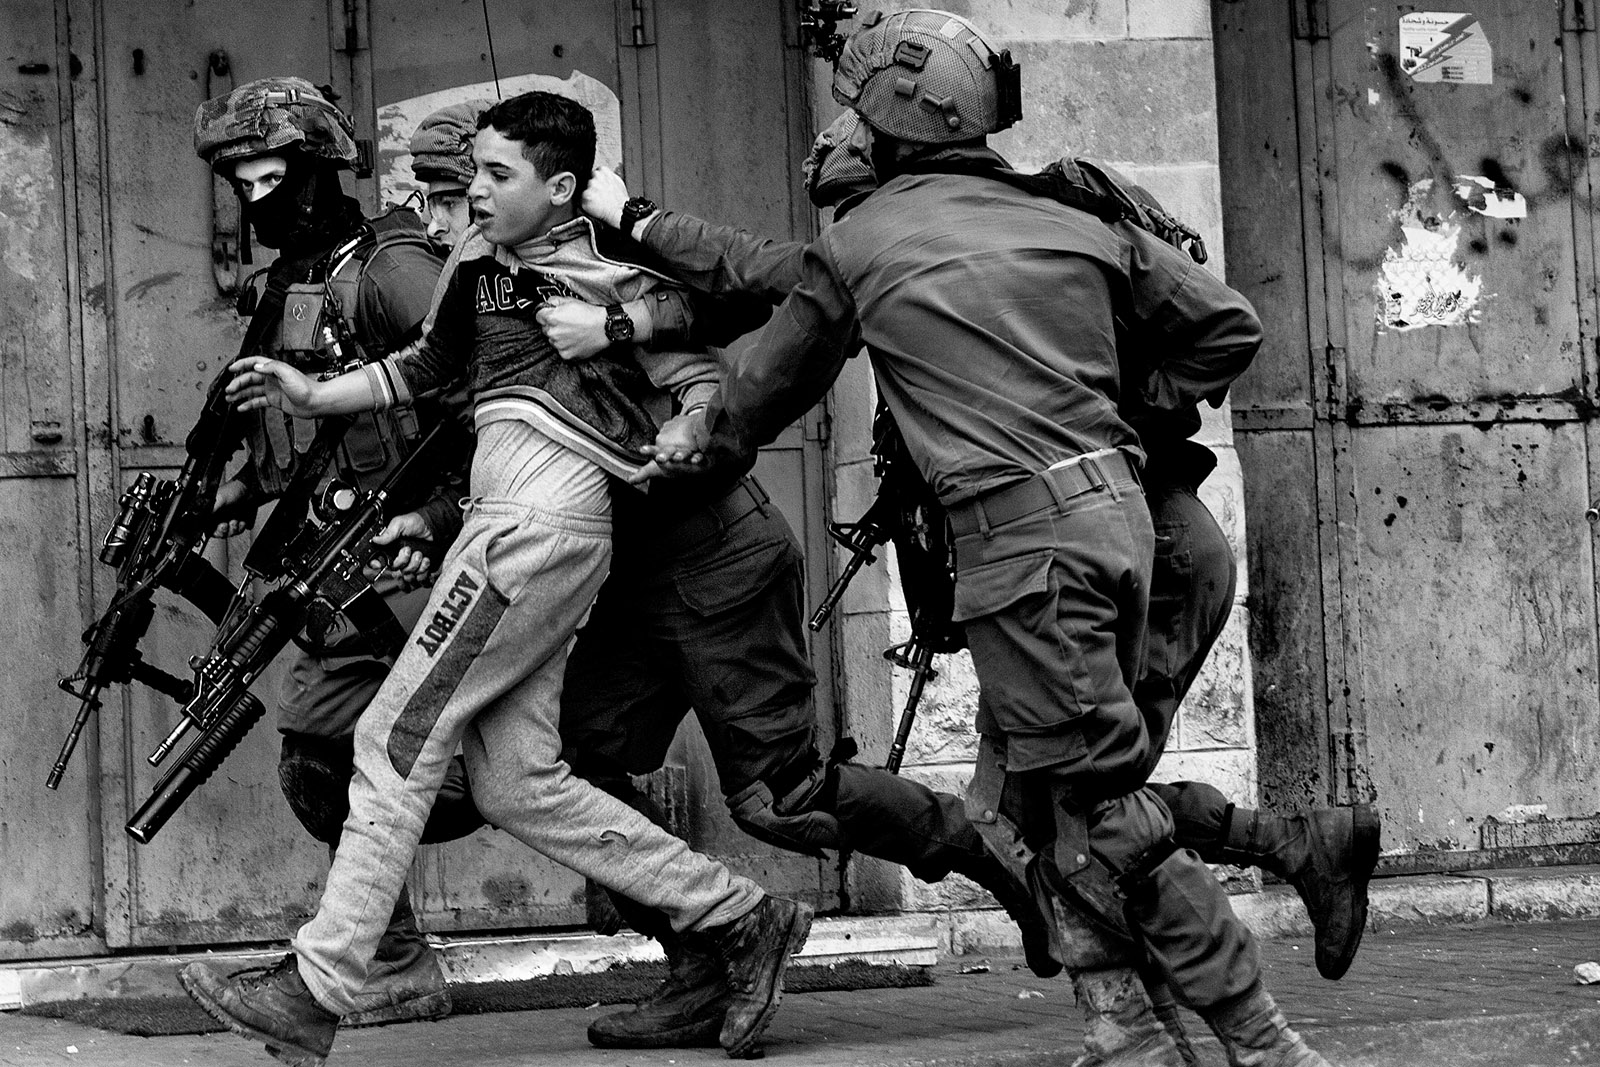 Bearing Witness in the West Bank | by Raja Shehadeh | The